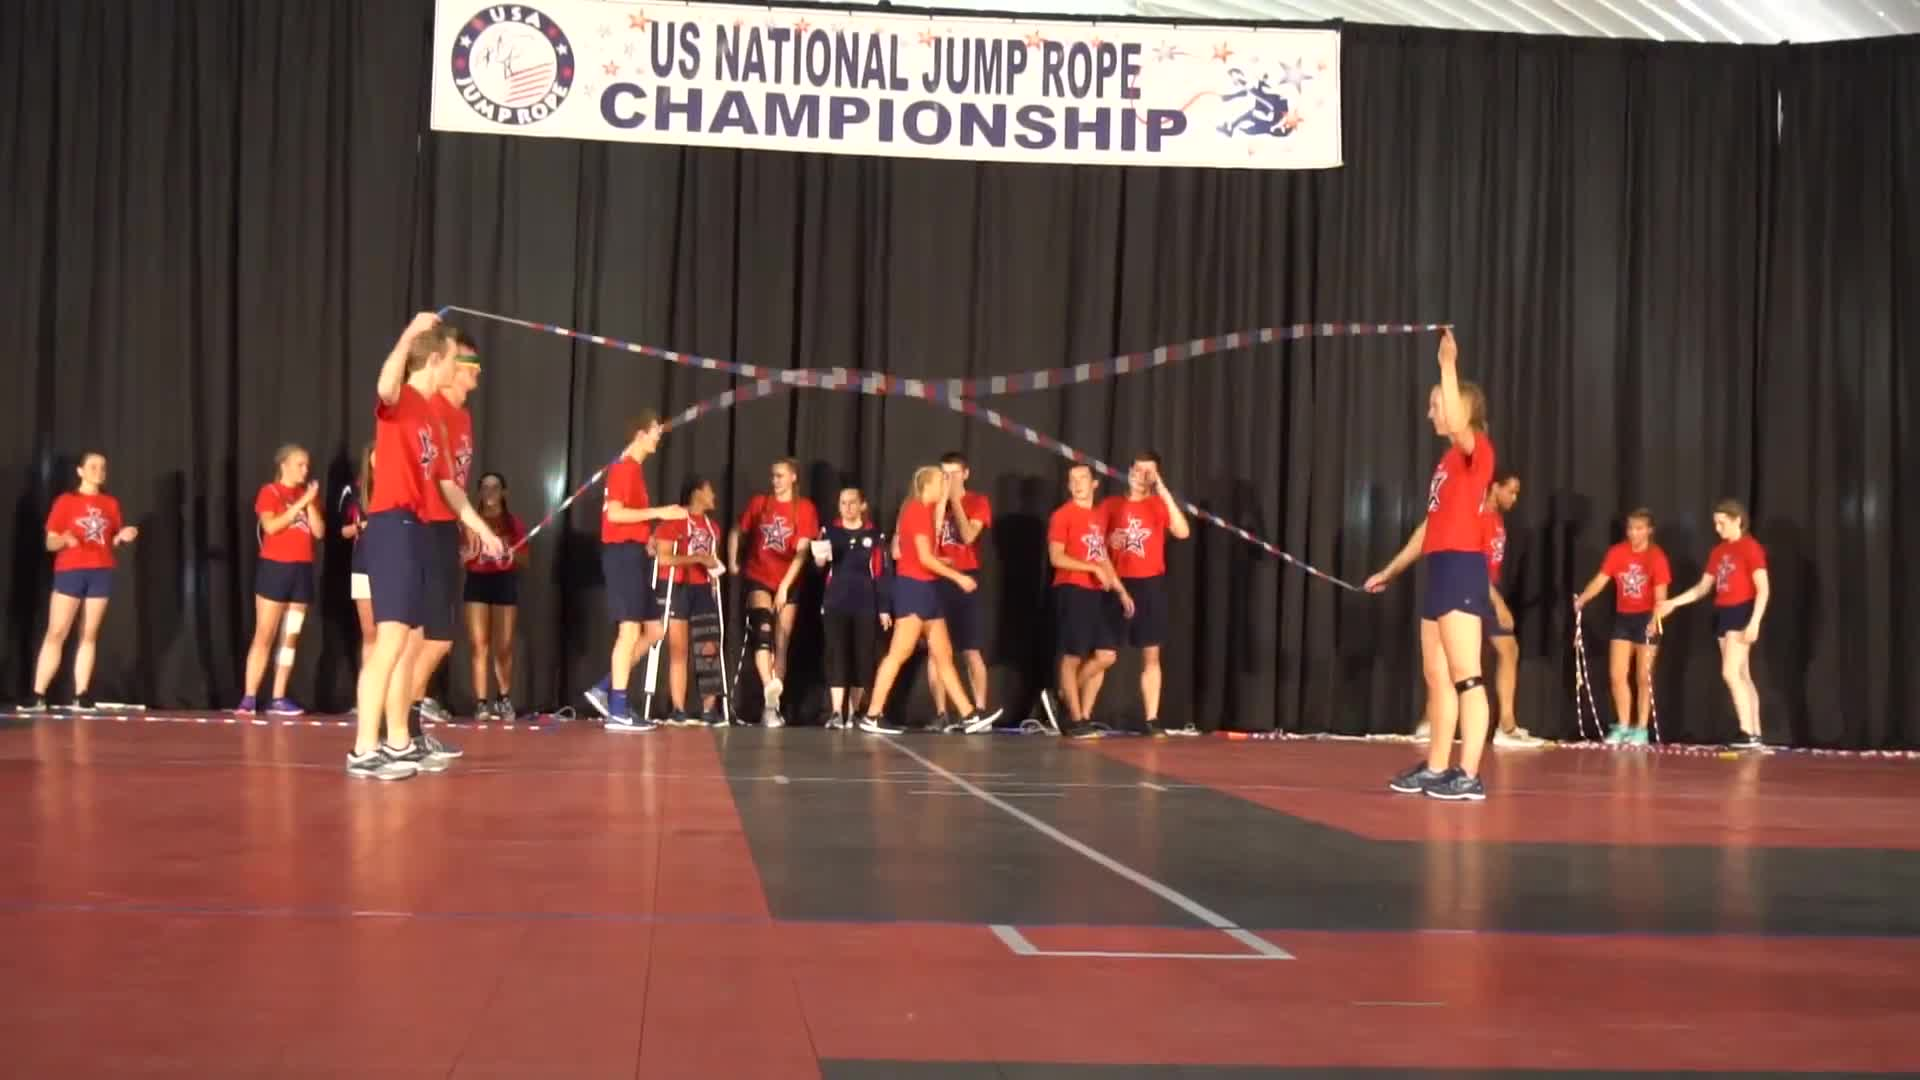 2018, Film & Animation, WeJumpRope Music Videos, grand nationals, jump rope, usajr, wejumprope, blindfolded double dutch GIFs